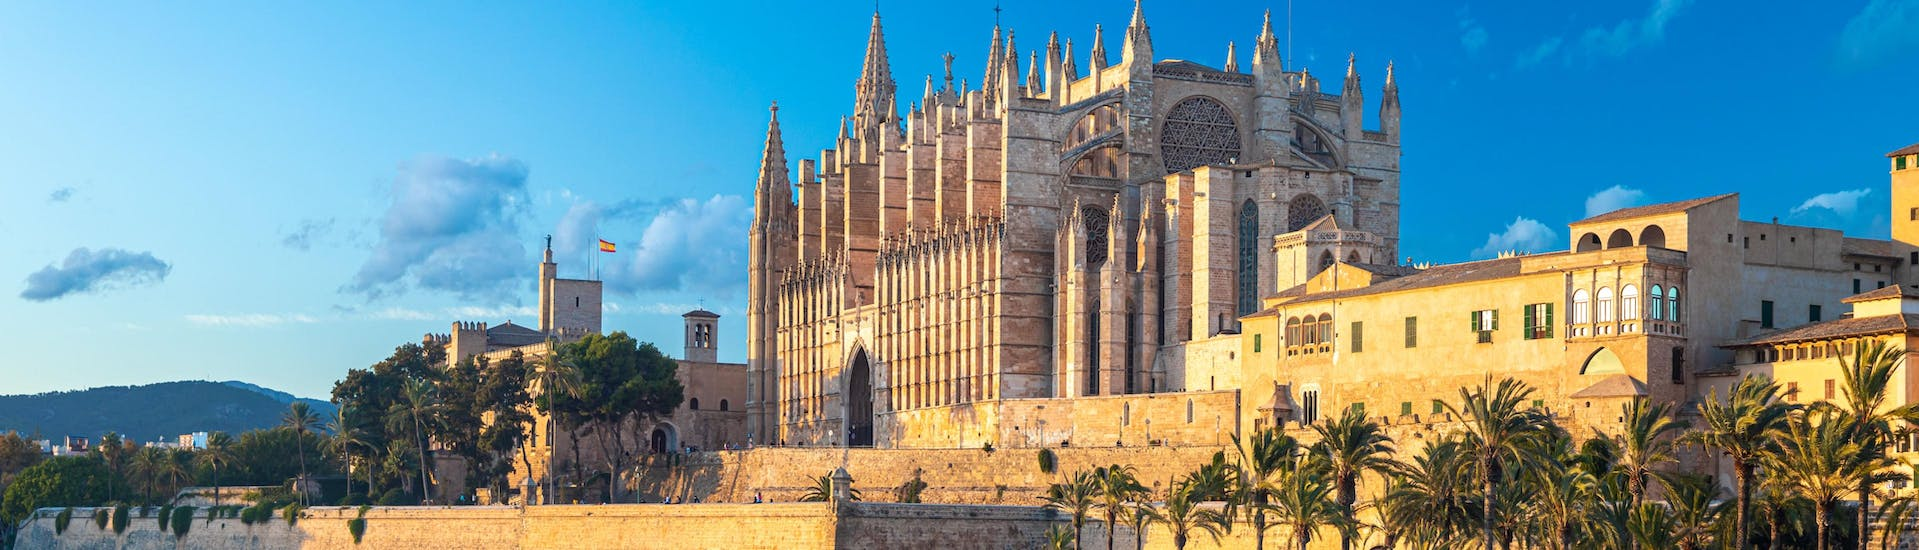 An image of the famous cathedral, as visible when departing for a boat tour in Palma de Mallorca.